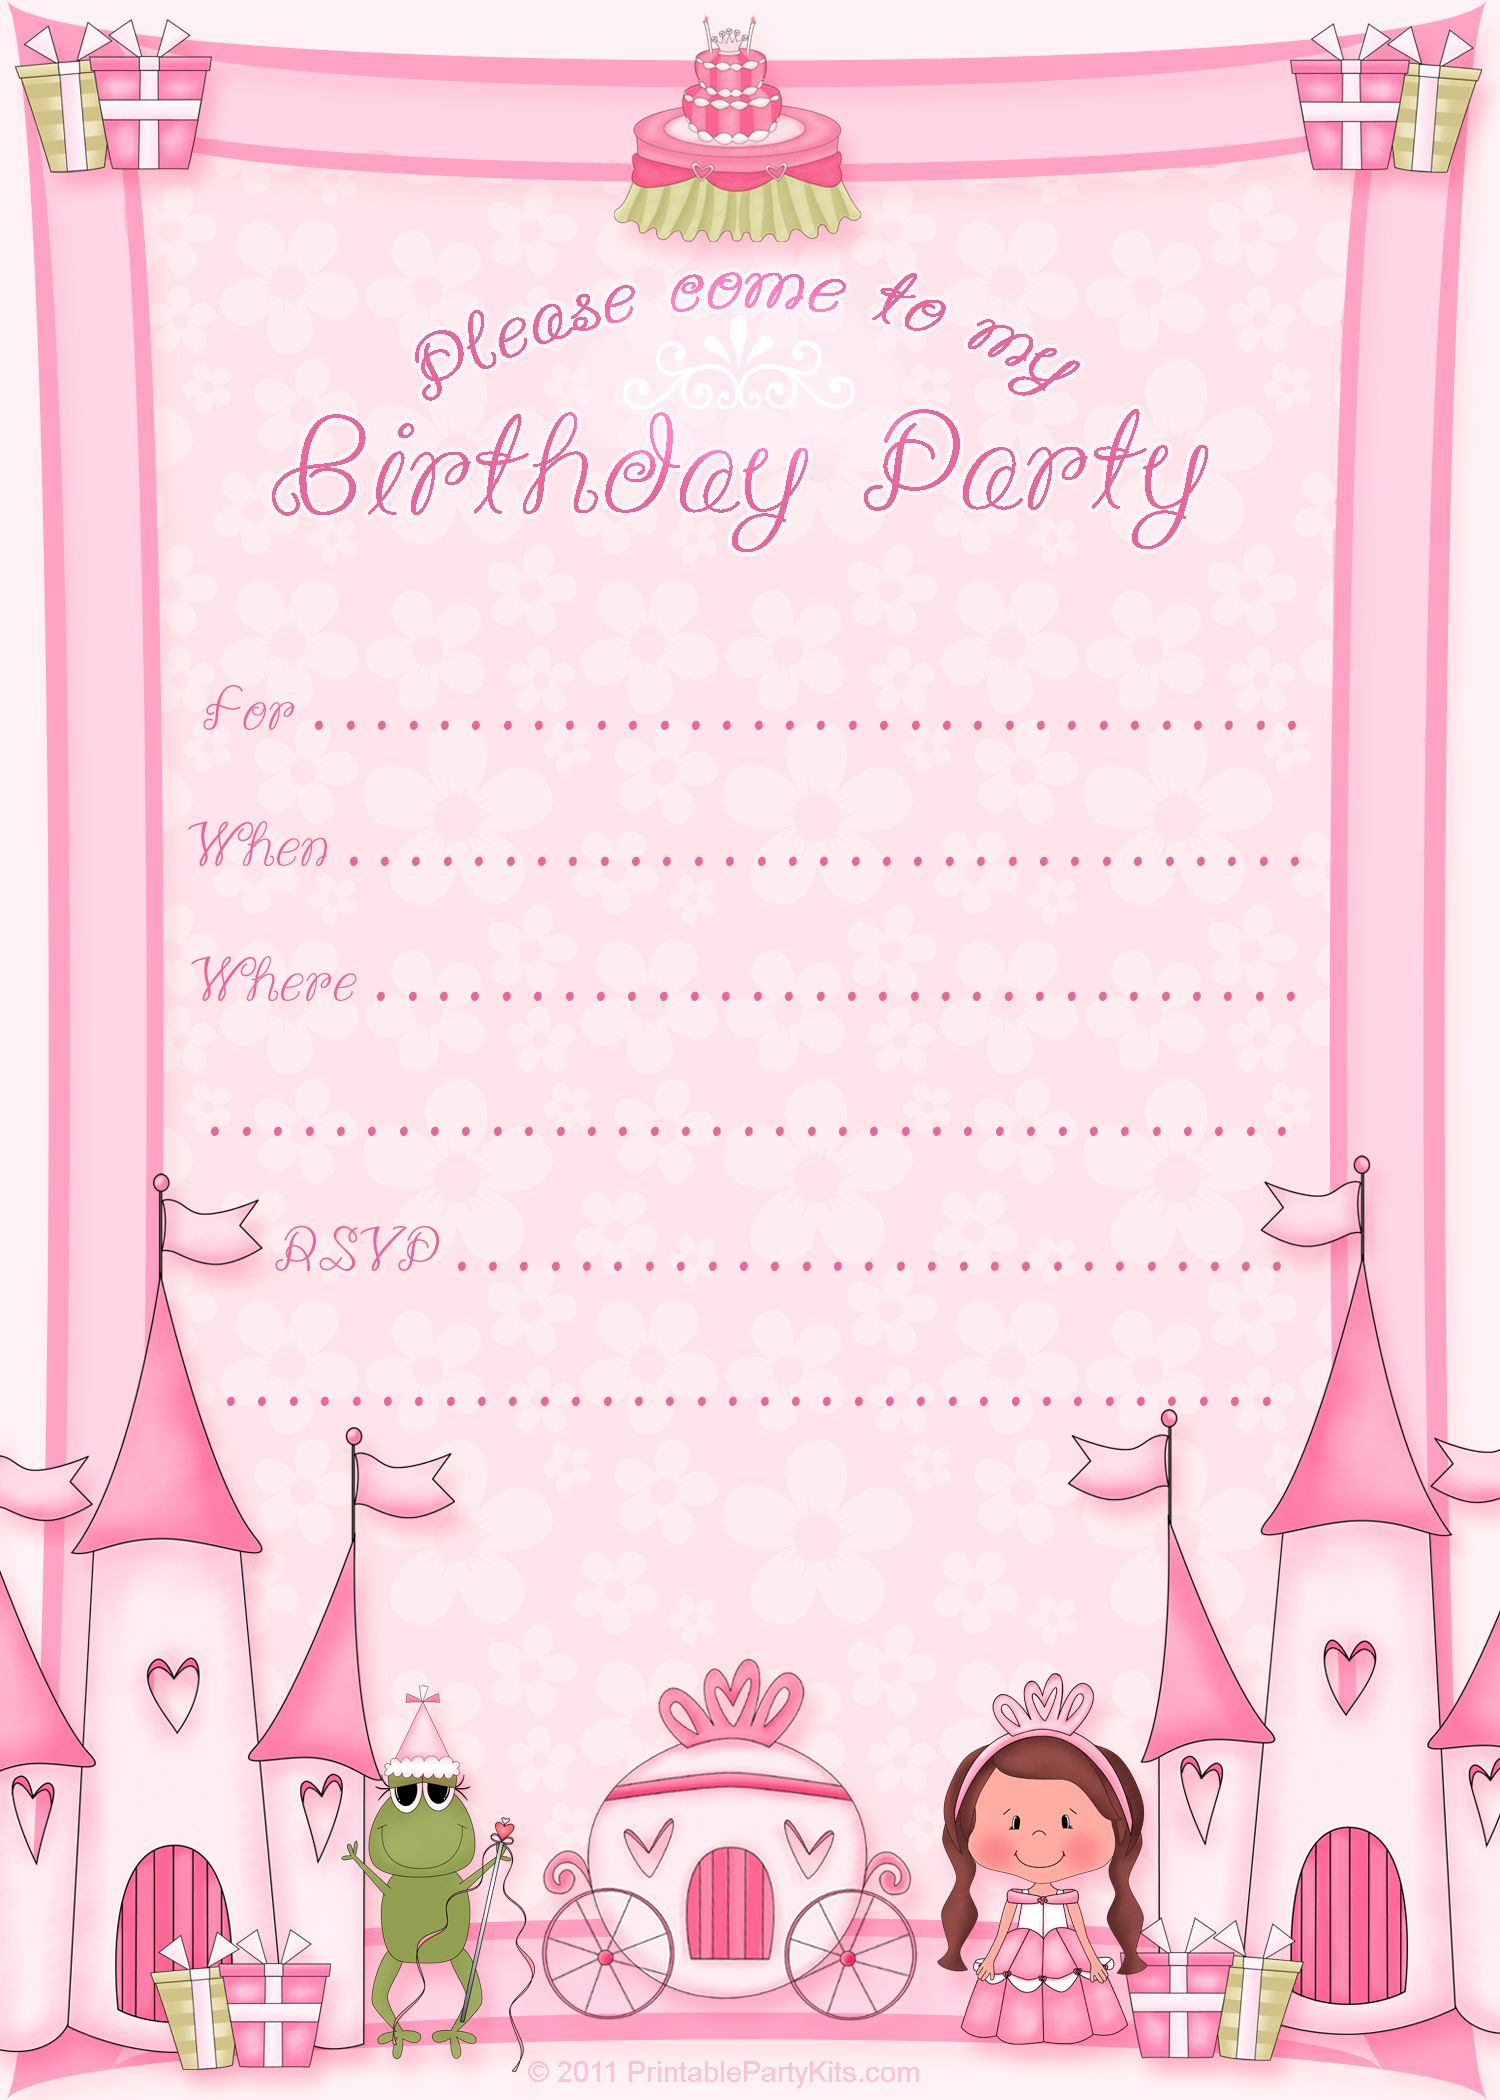 Free printable invitation pinned for kidfolio the parenting mobile free printable invitation pinned for kidfolio the parenting mobile app that makes sharing a snap filmwisefo